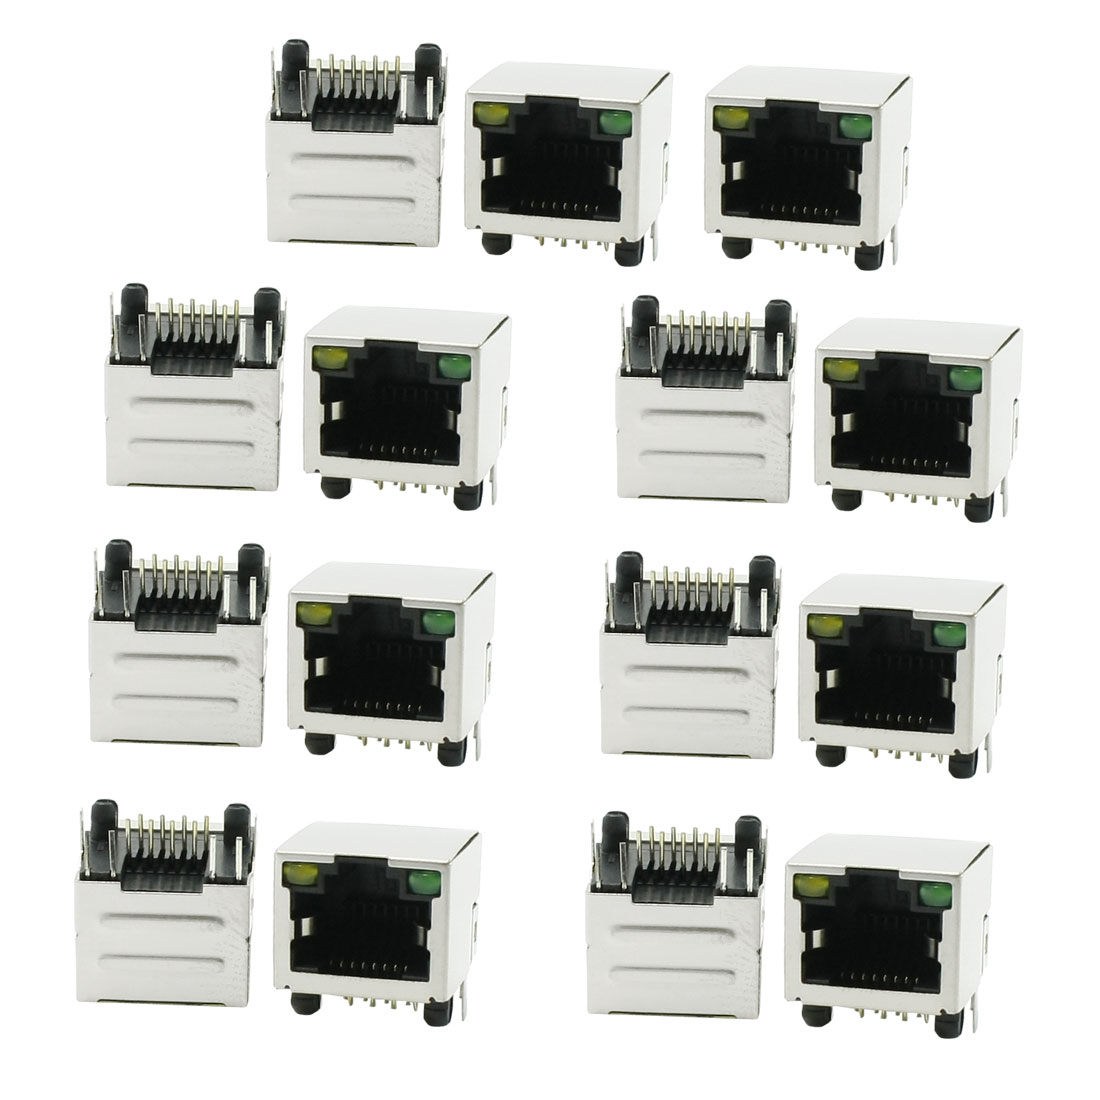 Right Angle Pins Stainless Steel Shield RJ45 8P8C PCB Mounting LED Jack 15 Pcs